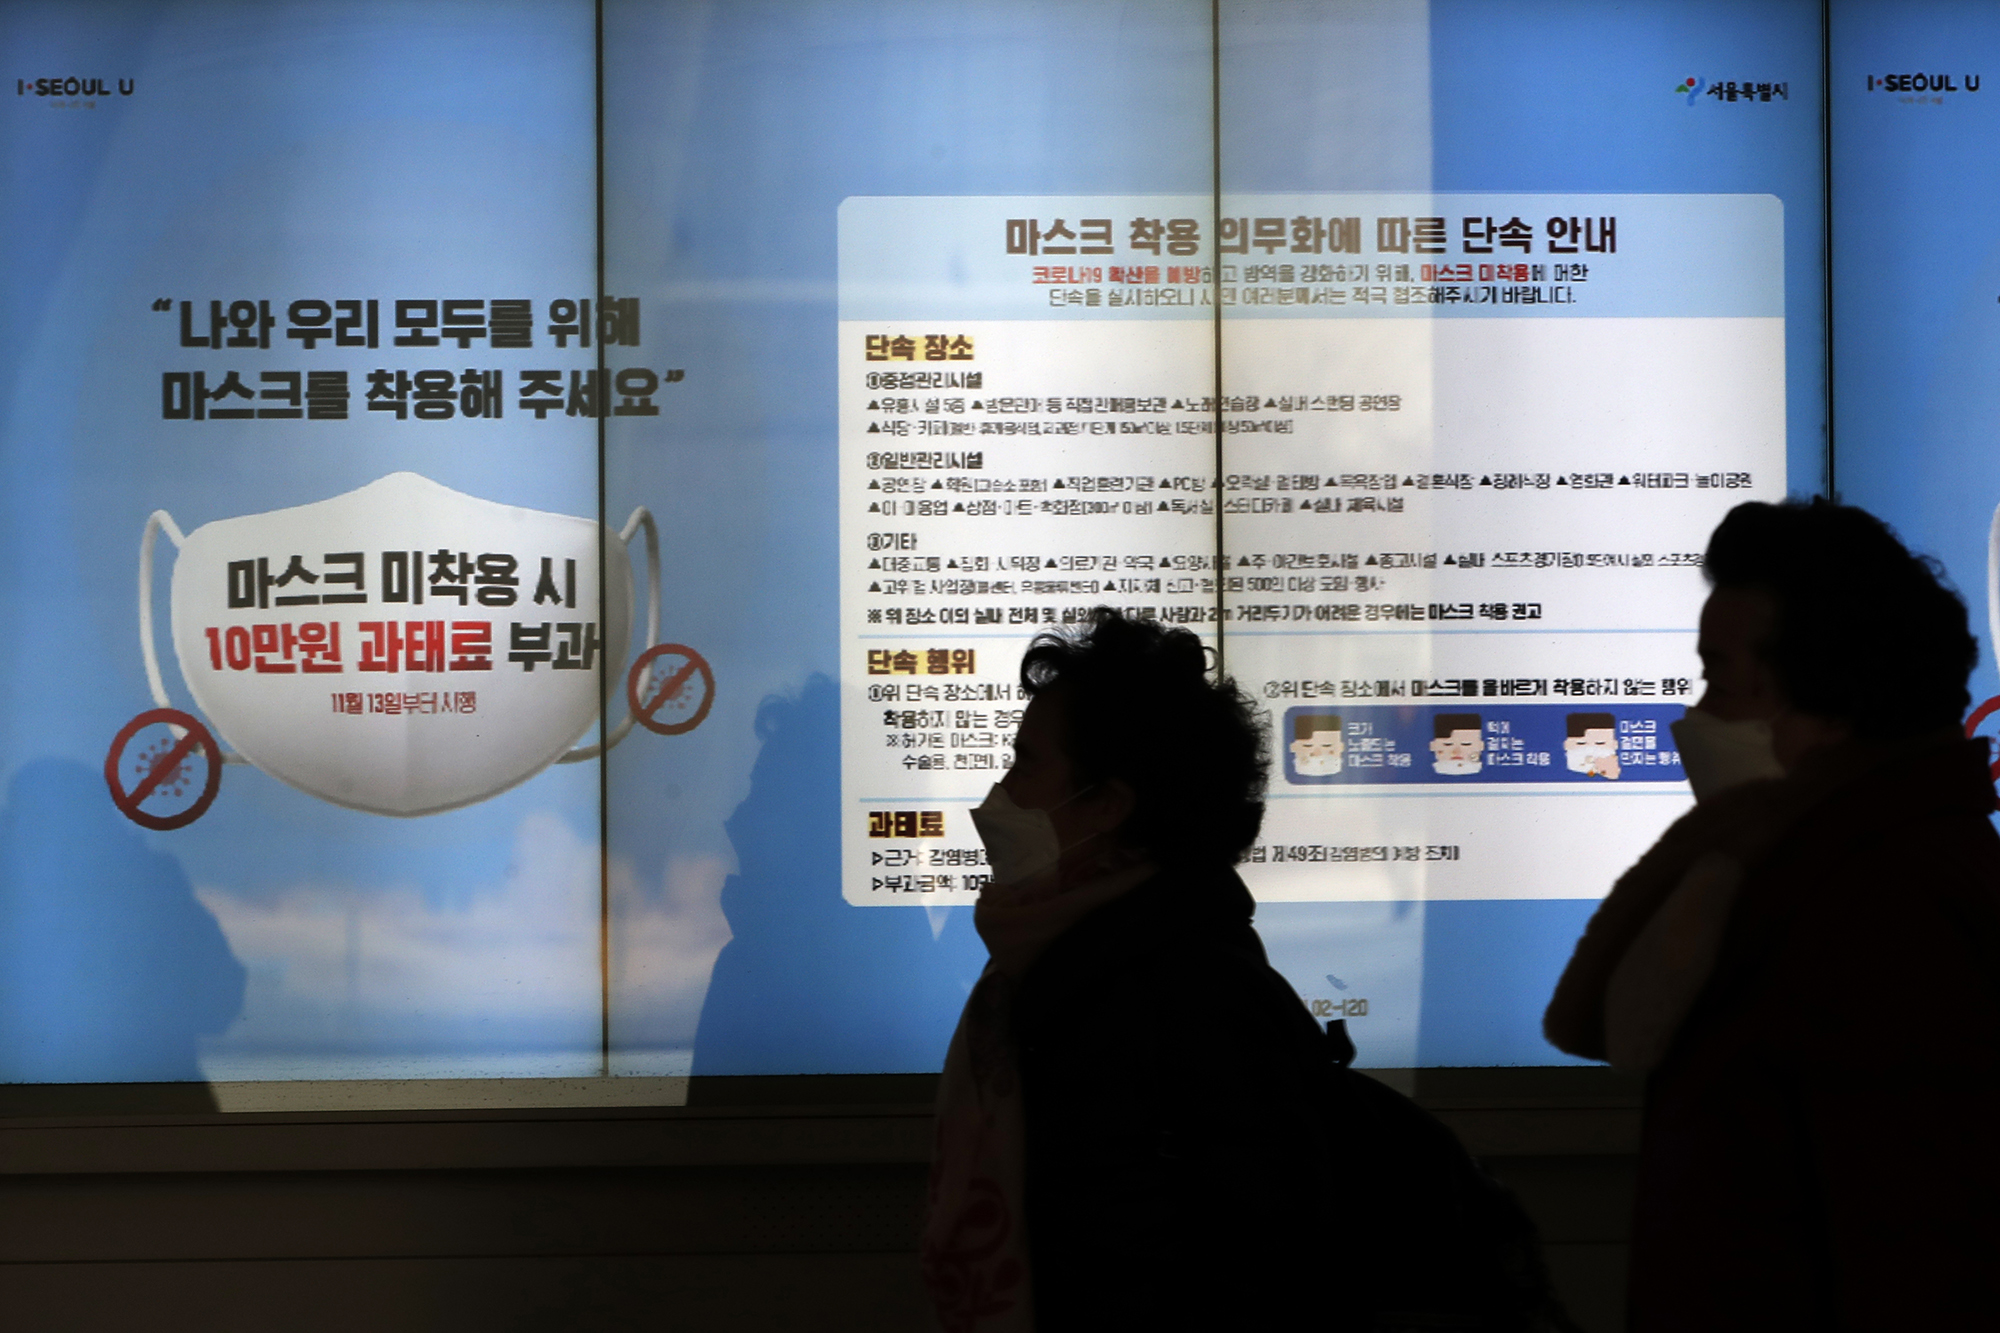 People wearing face masks walk near a screen displaying precautions against the coronavirus in Seoul, South Korea, on Sunday, December 27, 2020.